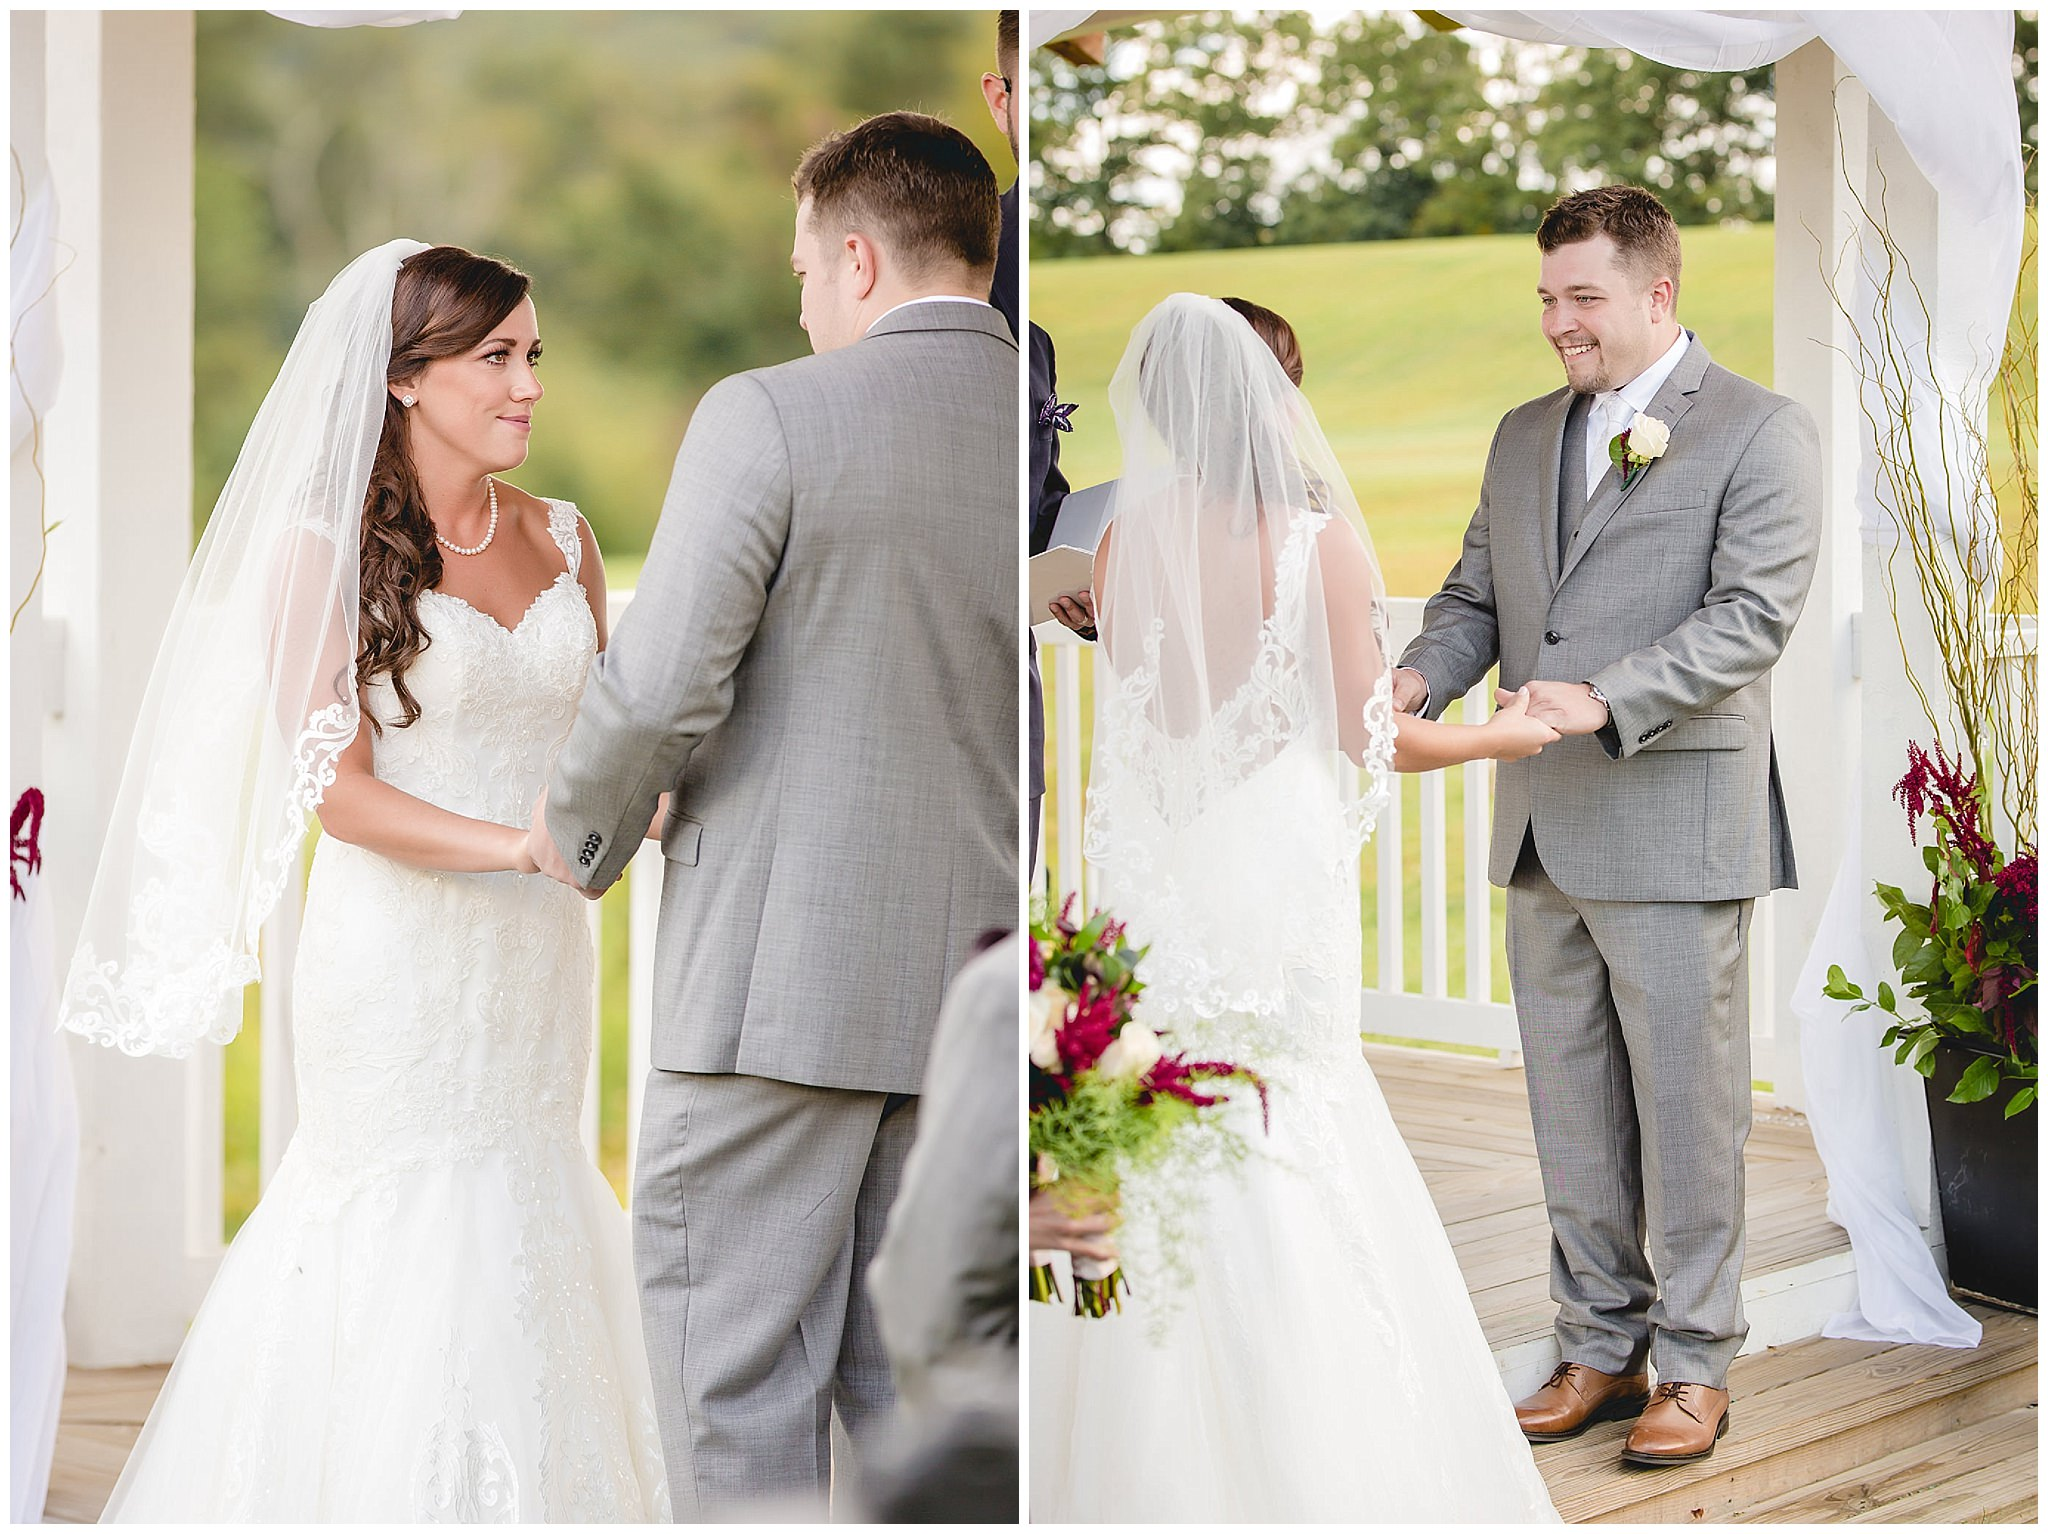 Bride and groom smile at each other during their outdoor wedding ceremony at White Barn